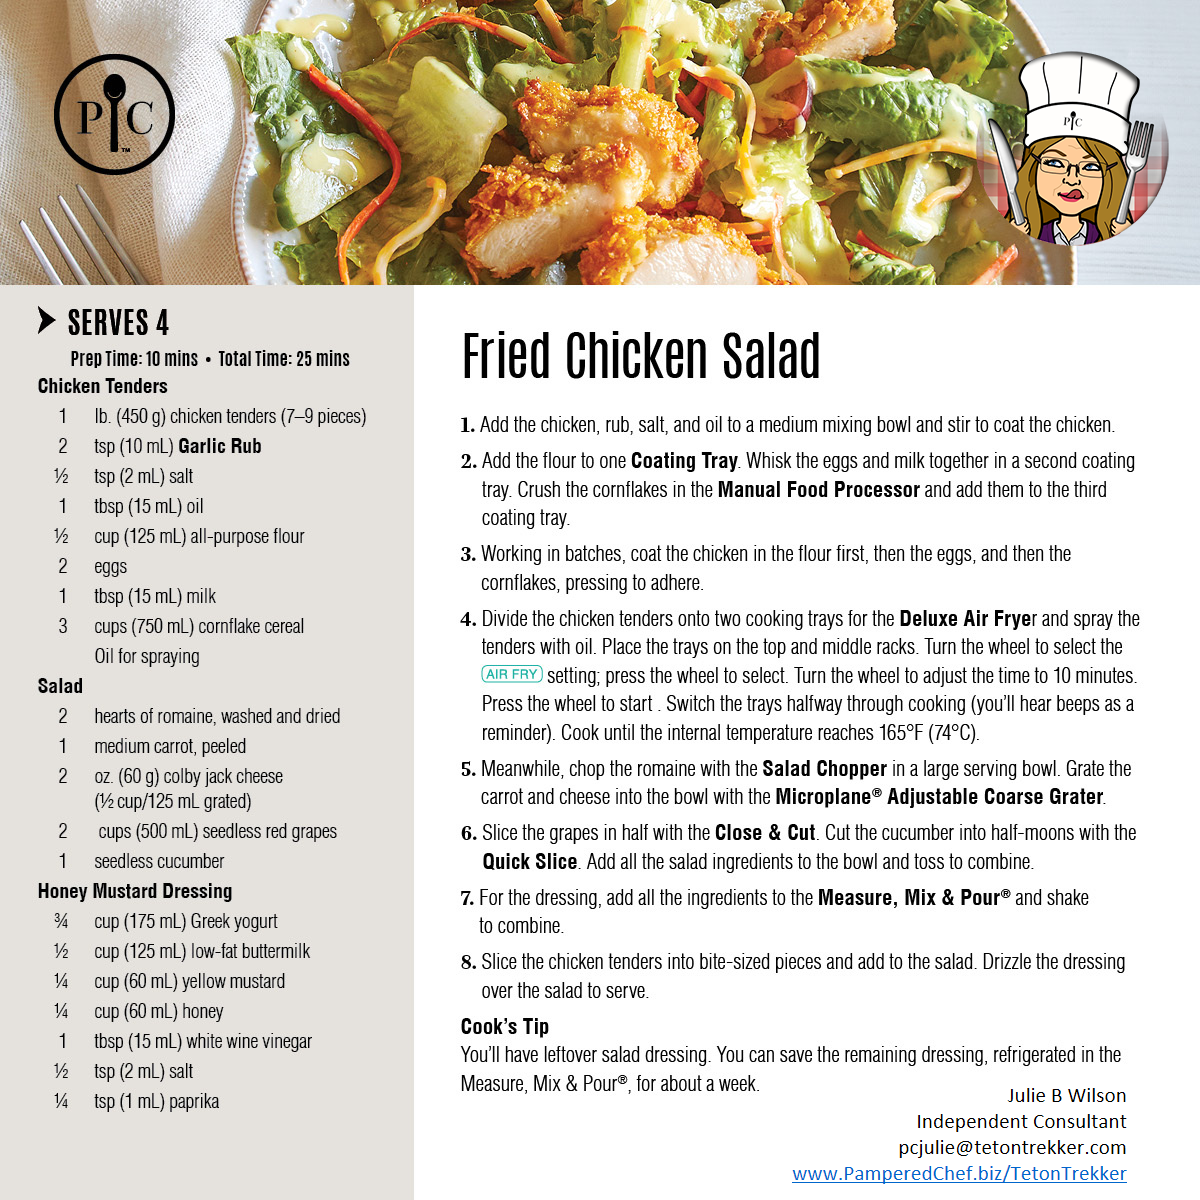 friedchickensalad